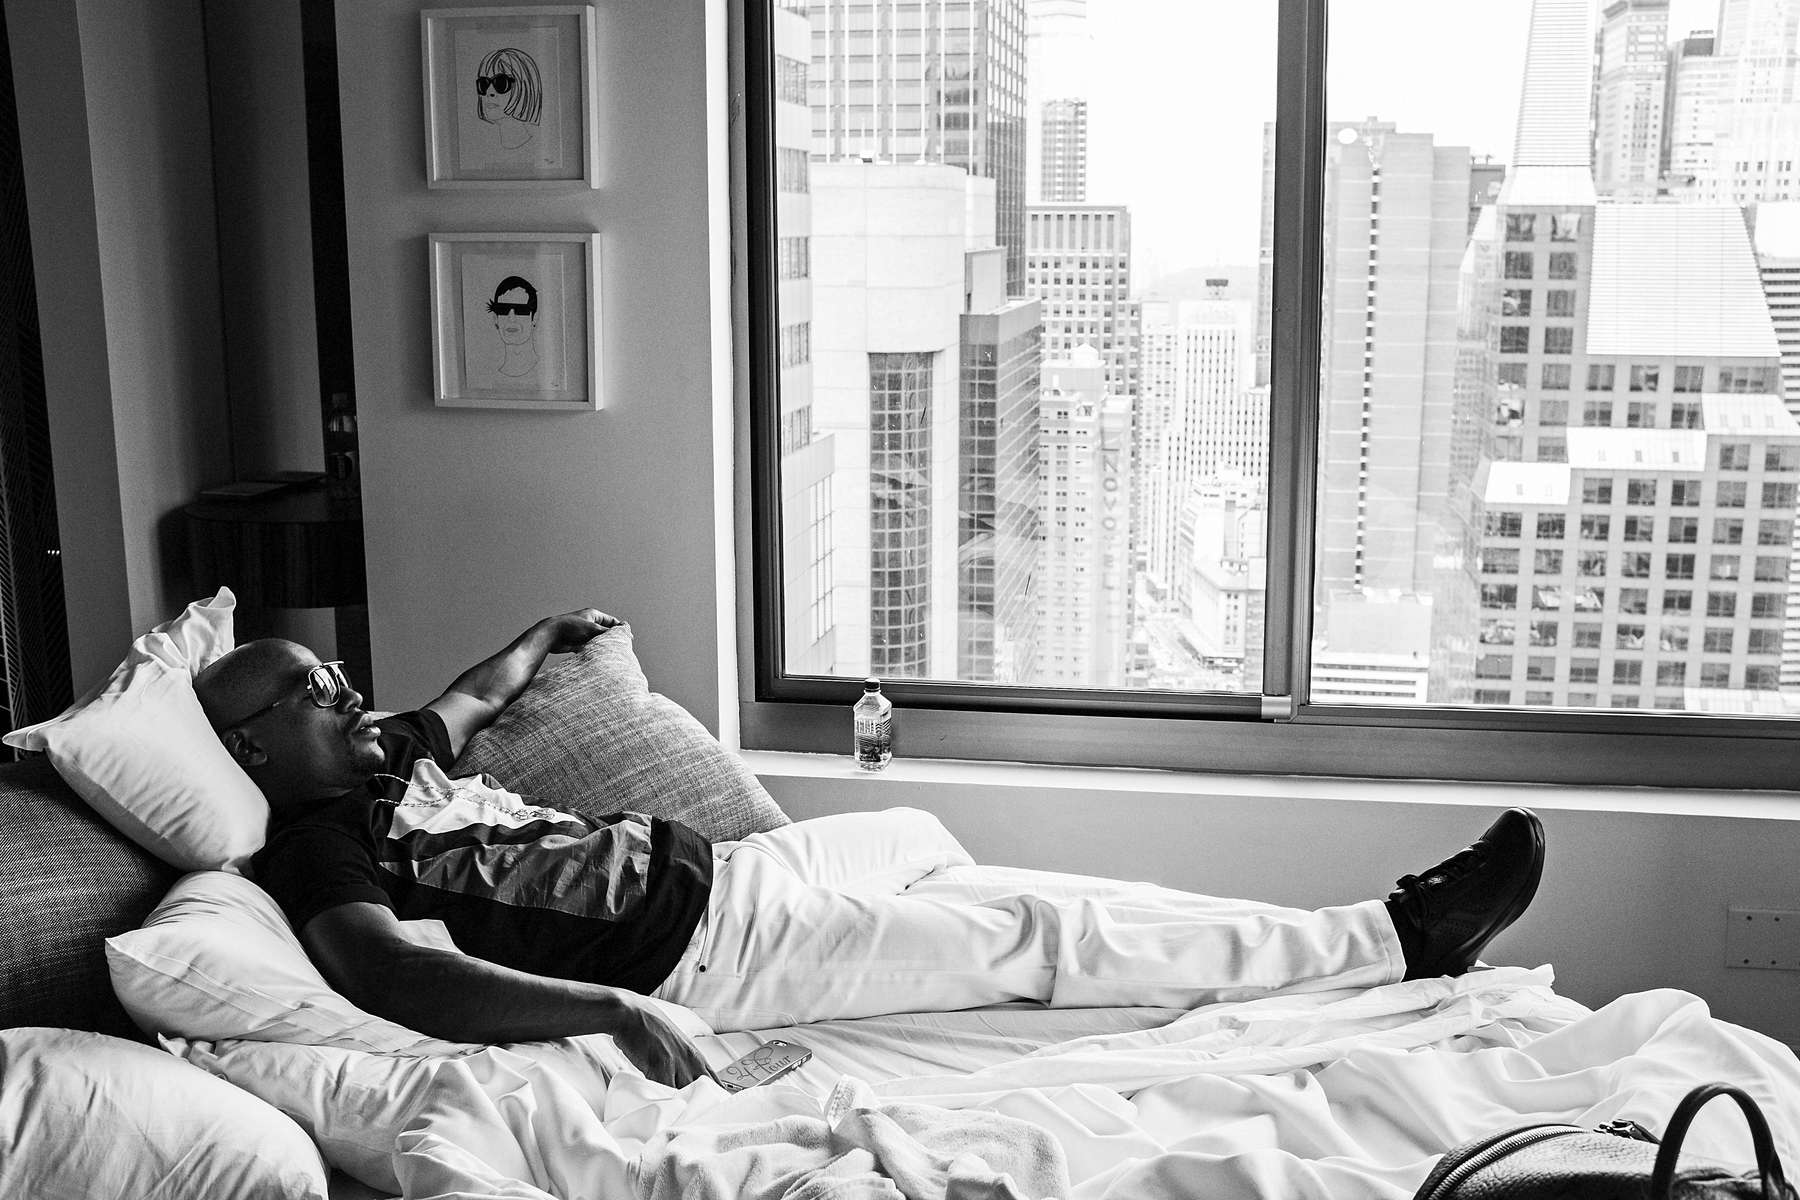 NEW YORK CITY, NY - JUNE 24: Floyd Mayweather Jr. lounges in his suite at the W Hotel in Times Square before the start of an 11-city promotional tour for his Sept. 14 bout with Saul {quote}Canelo{quote} Alvarez. (Photo by Benjamin Lowy/Reportage by Getty Images)